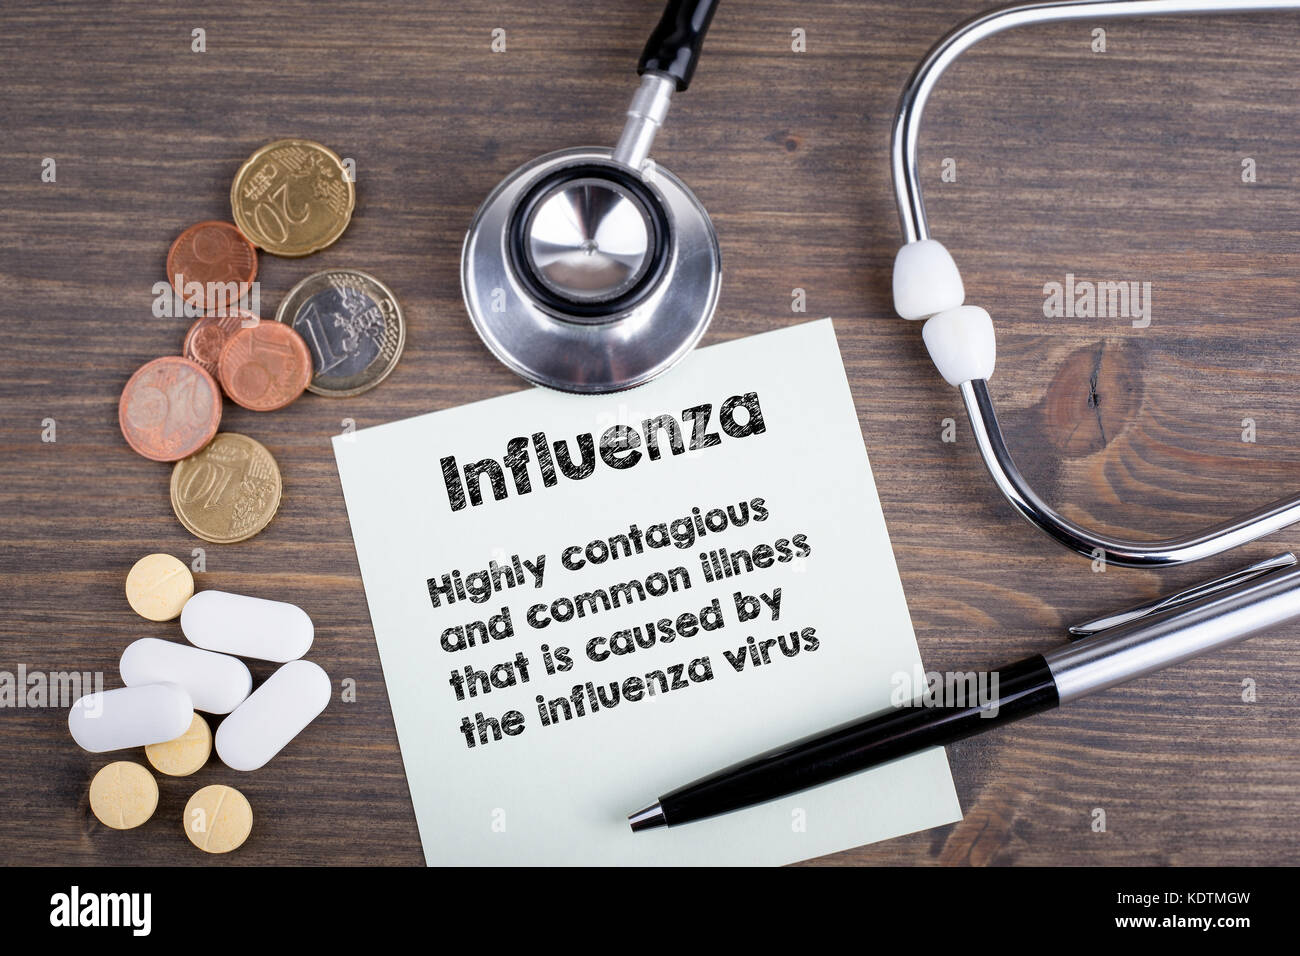 Influenza. Workplace of a doctor. Stethoscope on wooden desk background - Stock Image